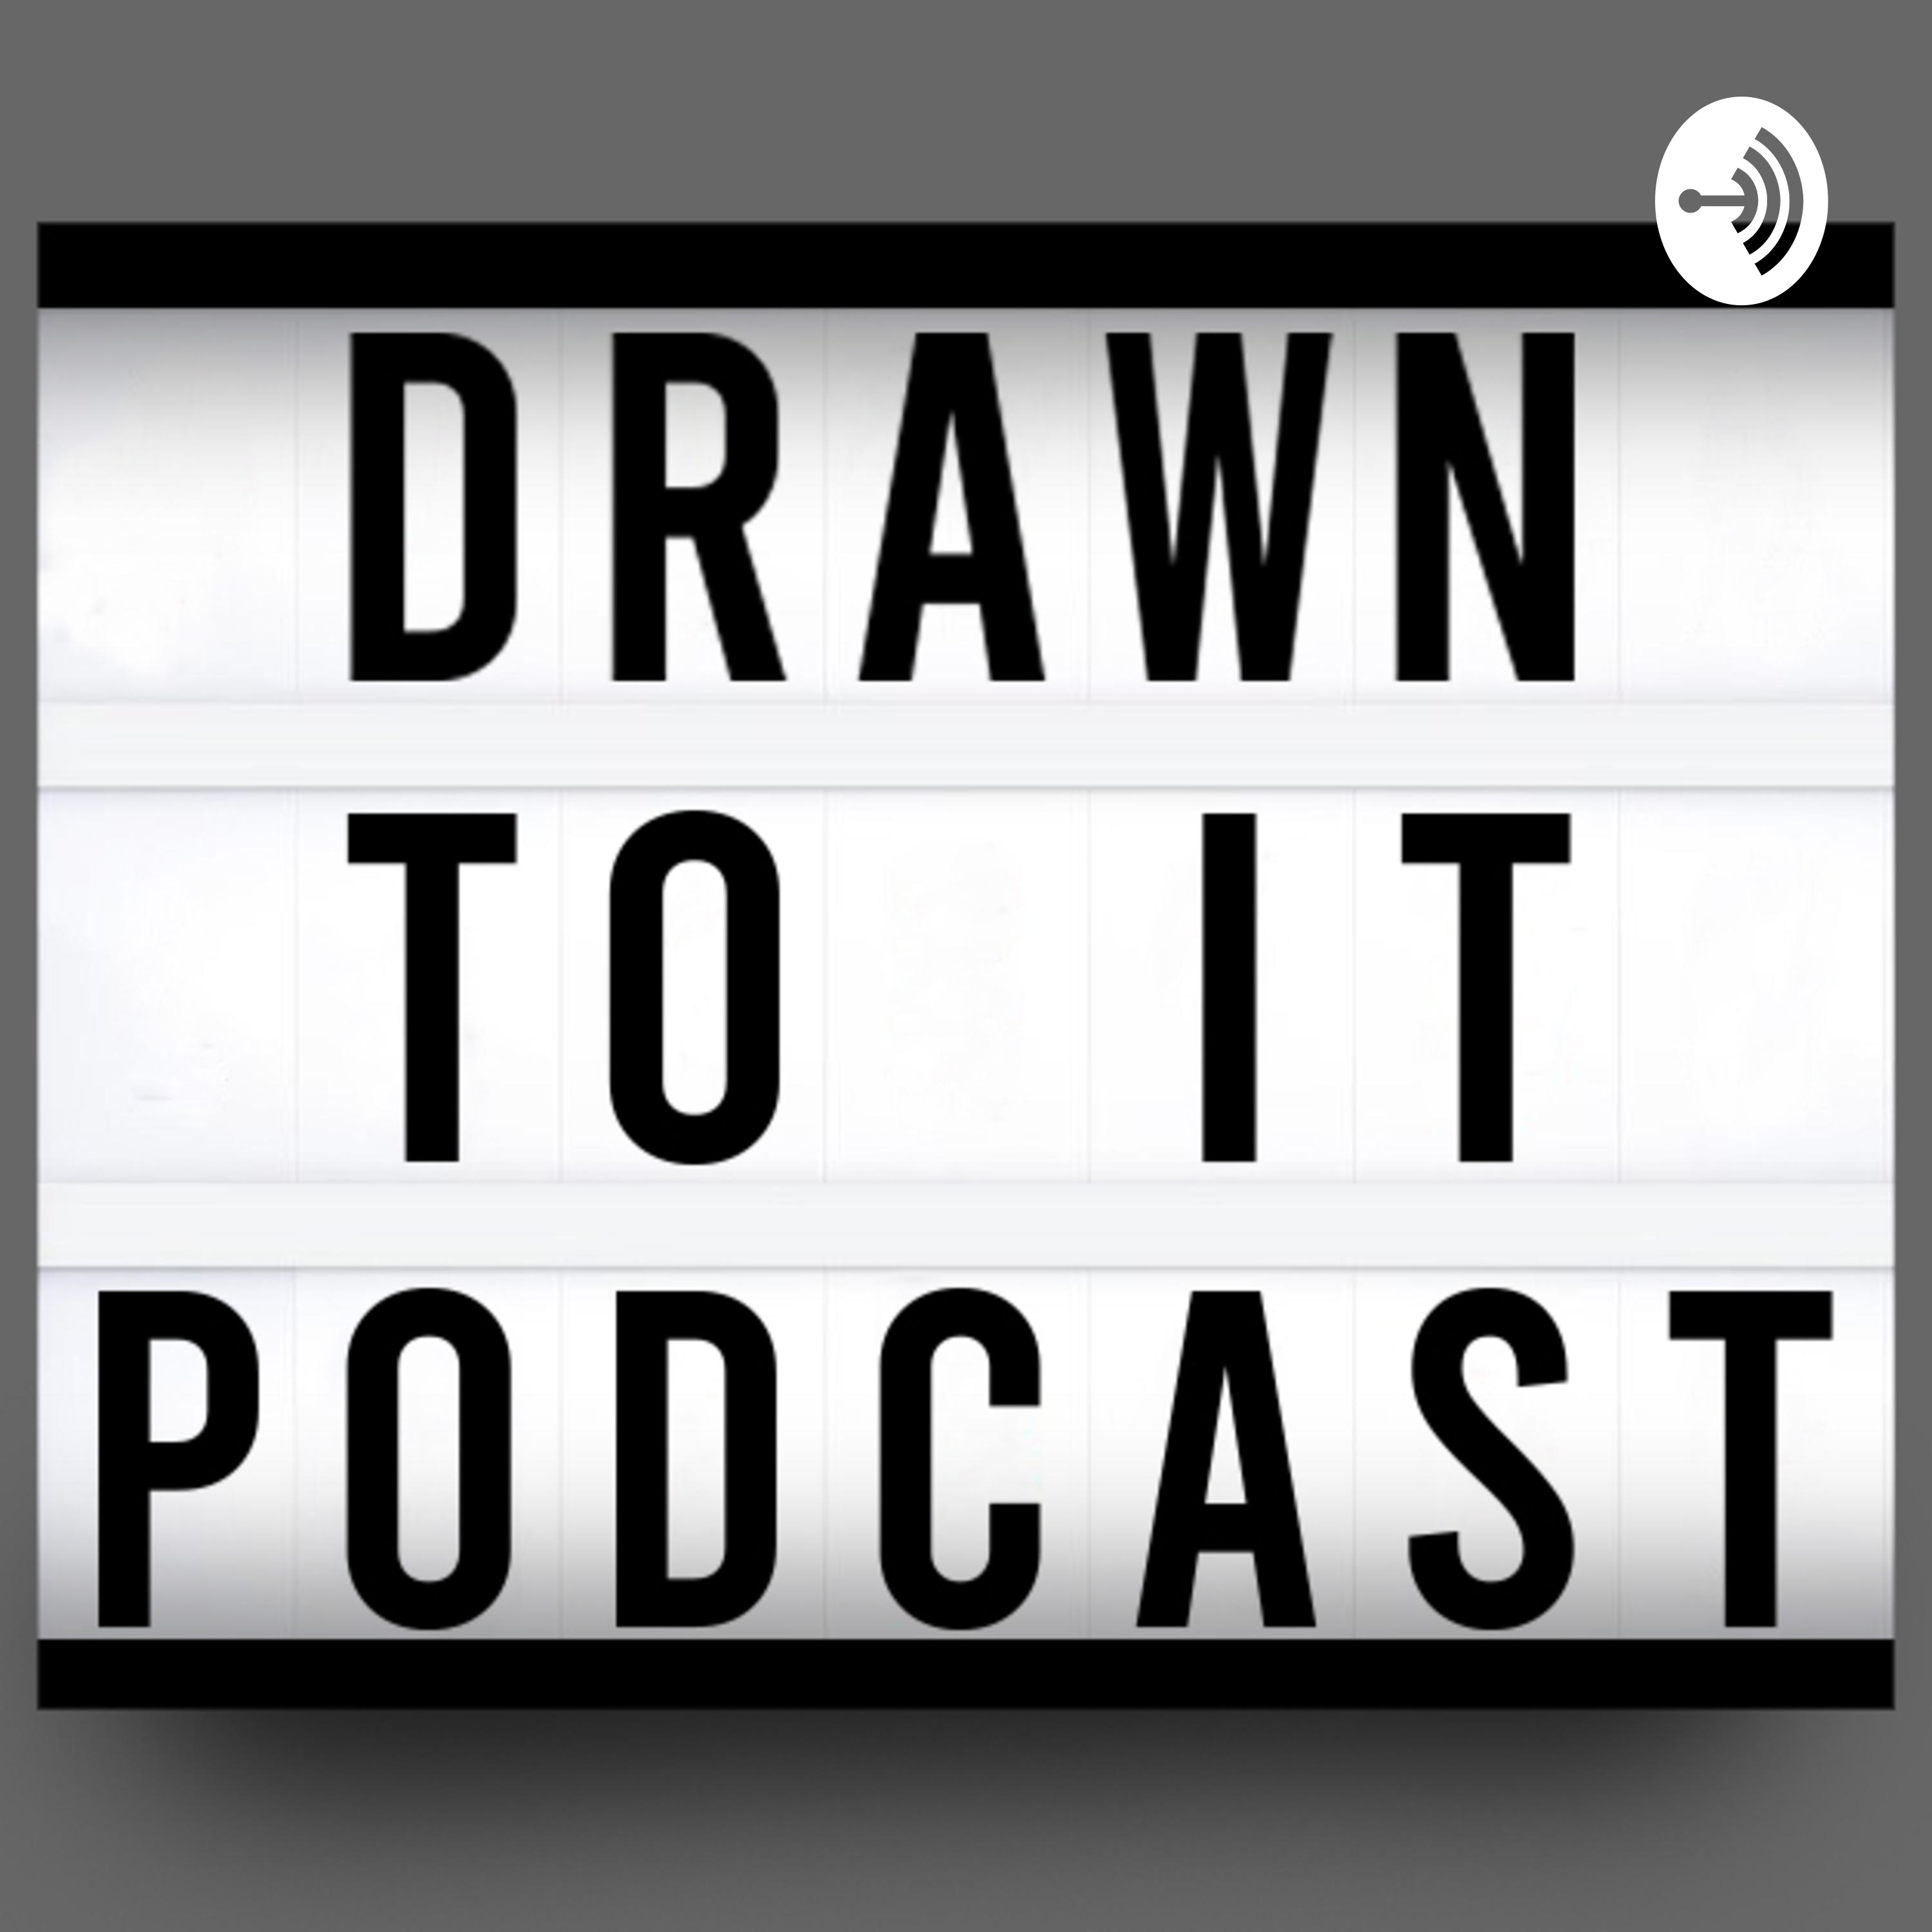 Drawn To IT Podcast - Episode 14 - TRAVIS BLAISE His career casts a very large shadow of accomplishments!